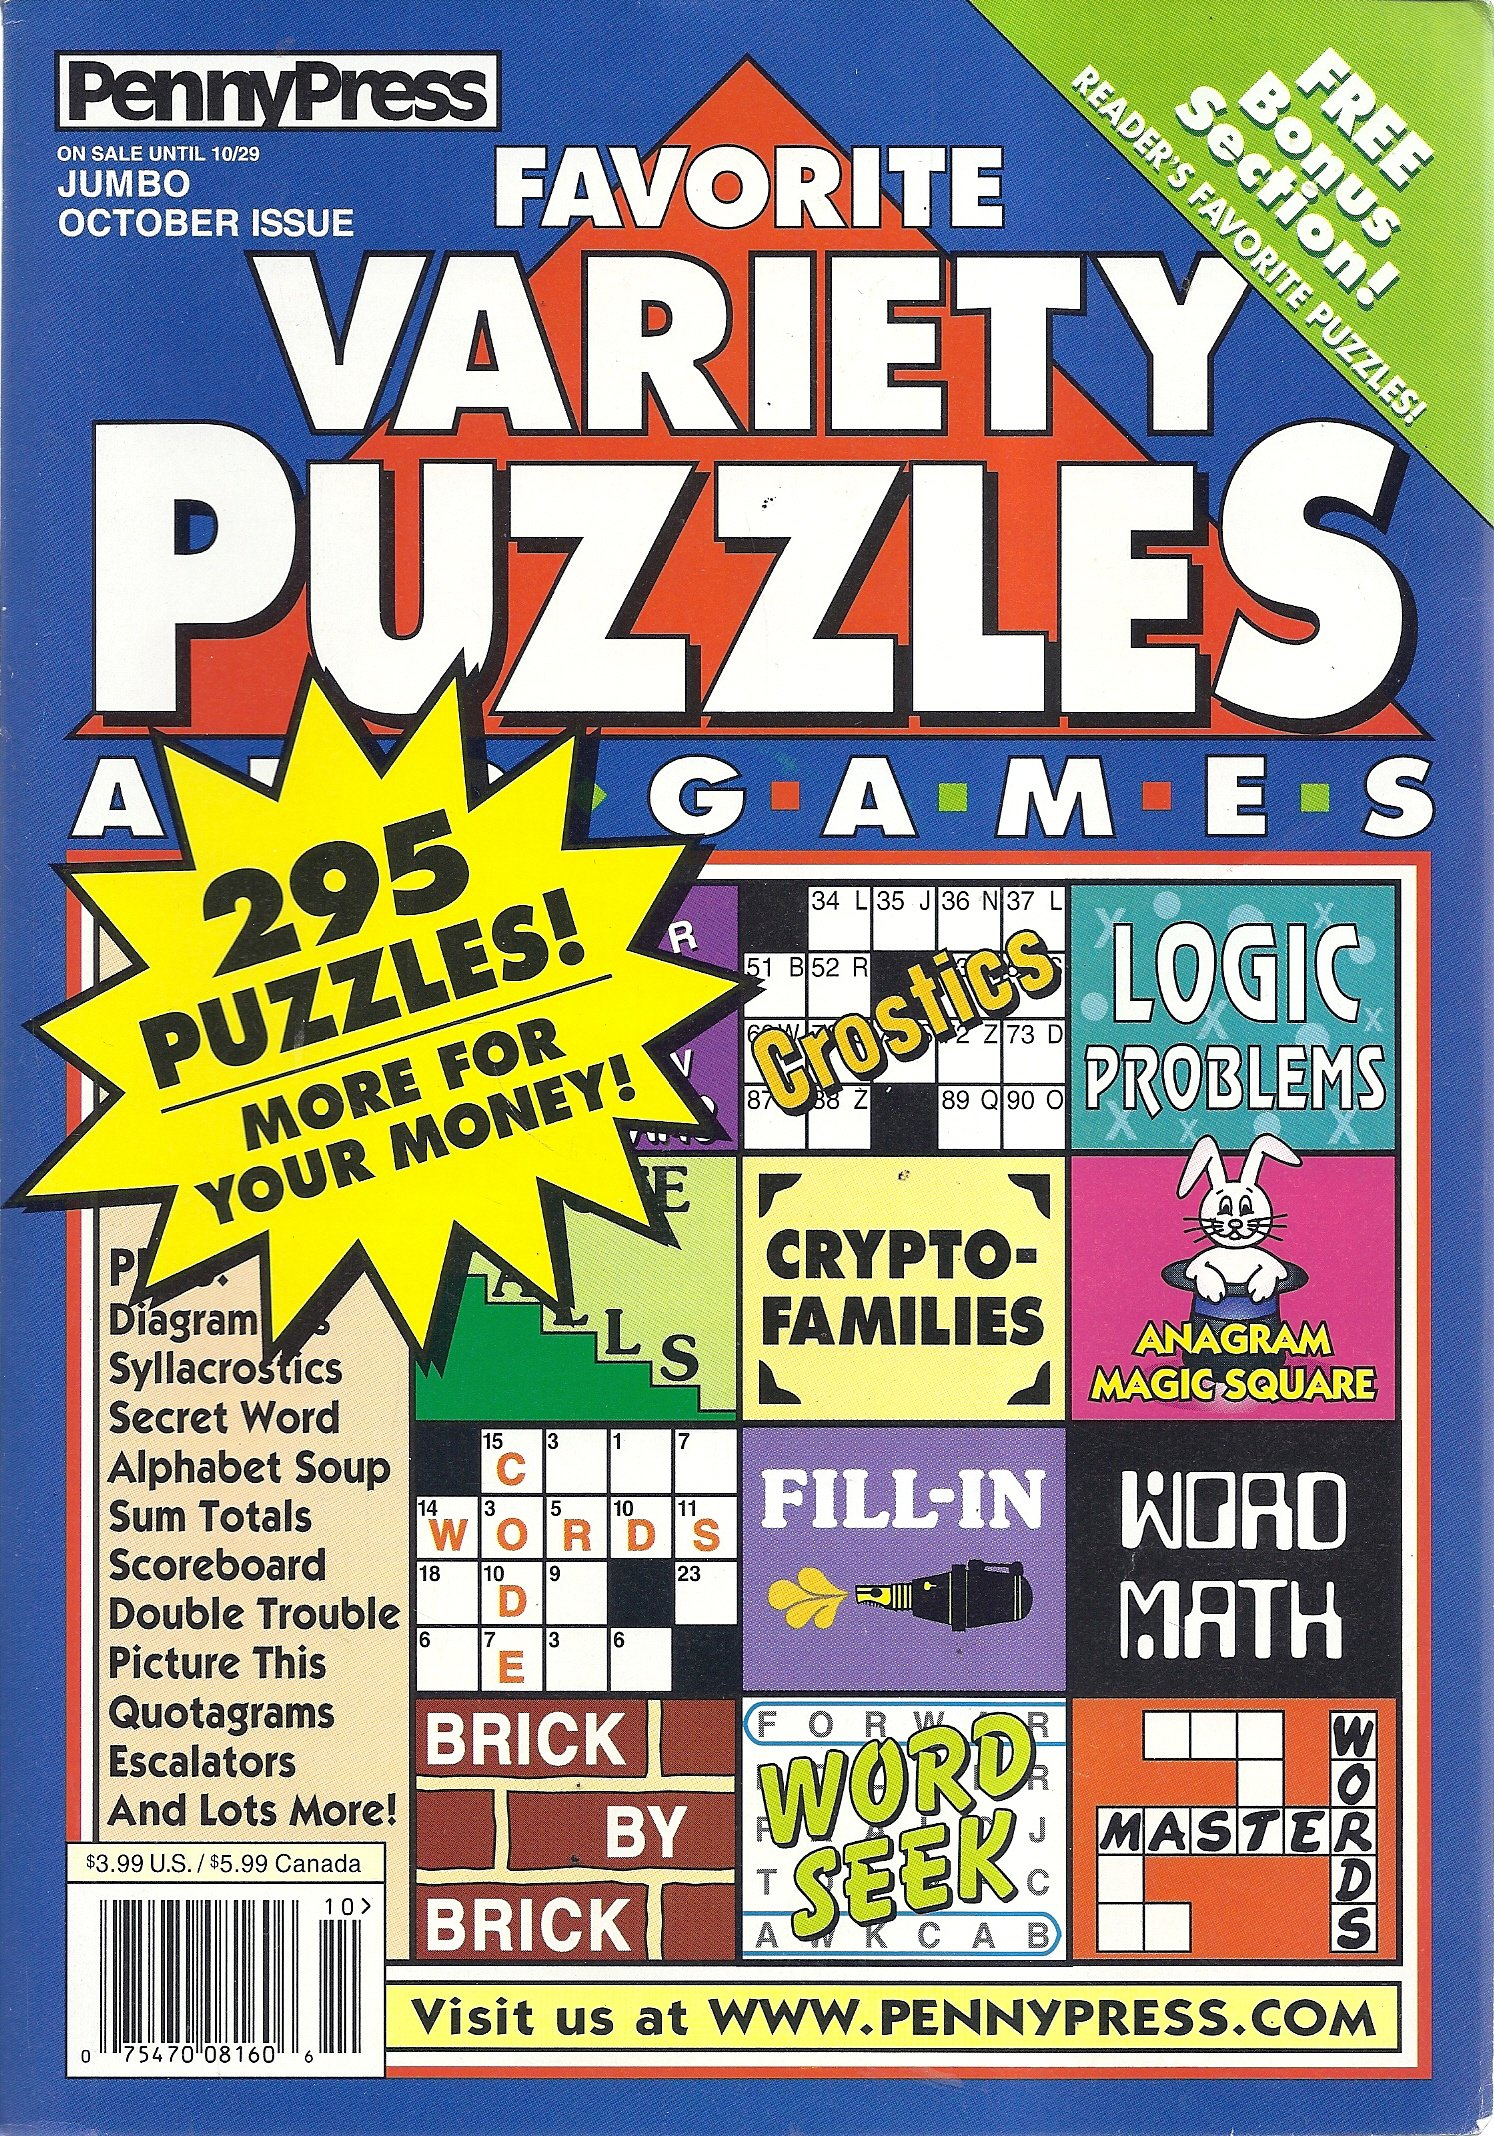 Download Favorite Variety Puzzles and Games Magazine (October 2002 - Jumbo Issue) PDF